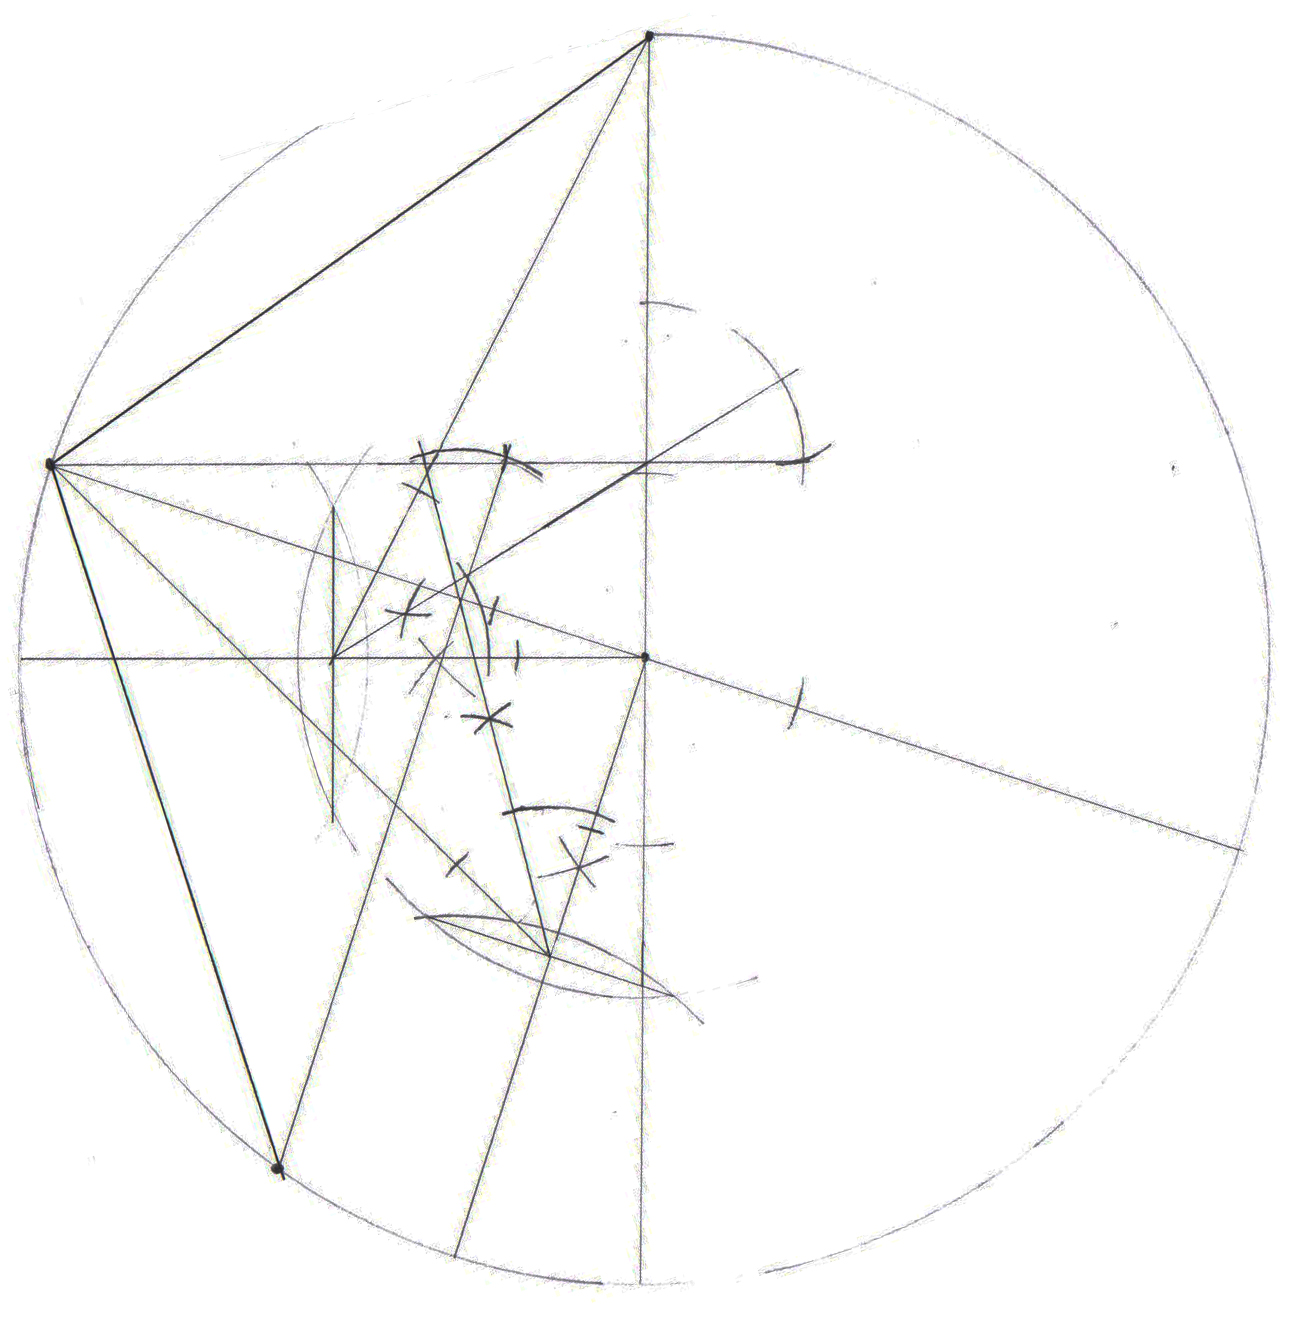 gallery for gt how to draw a pentagon on graph paper